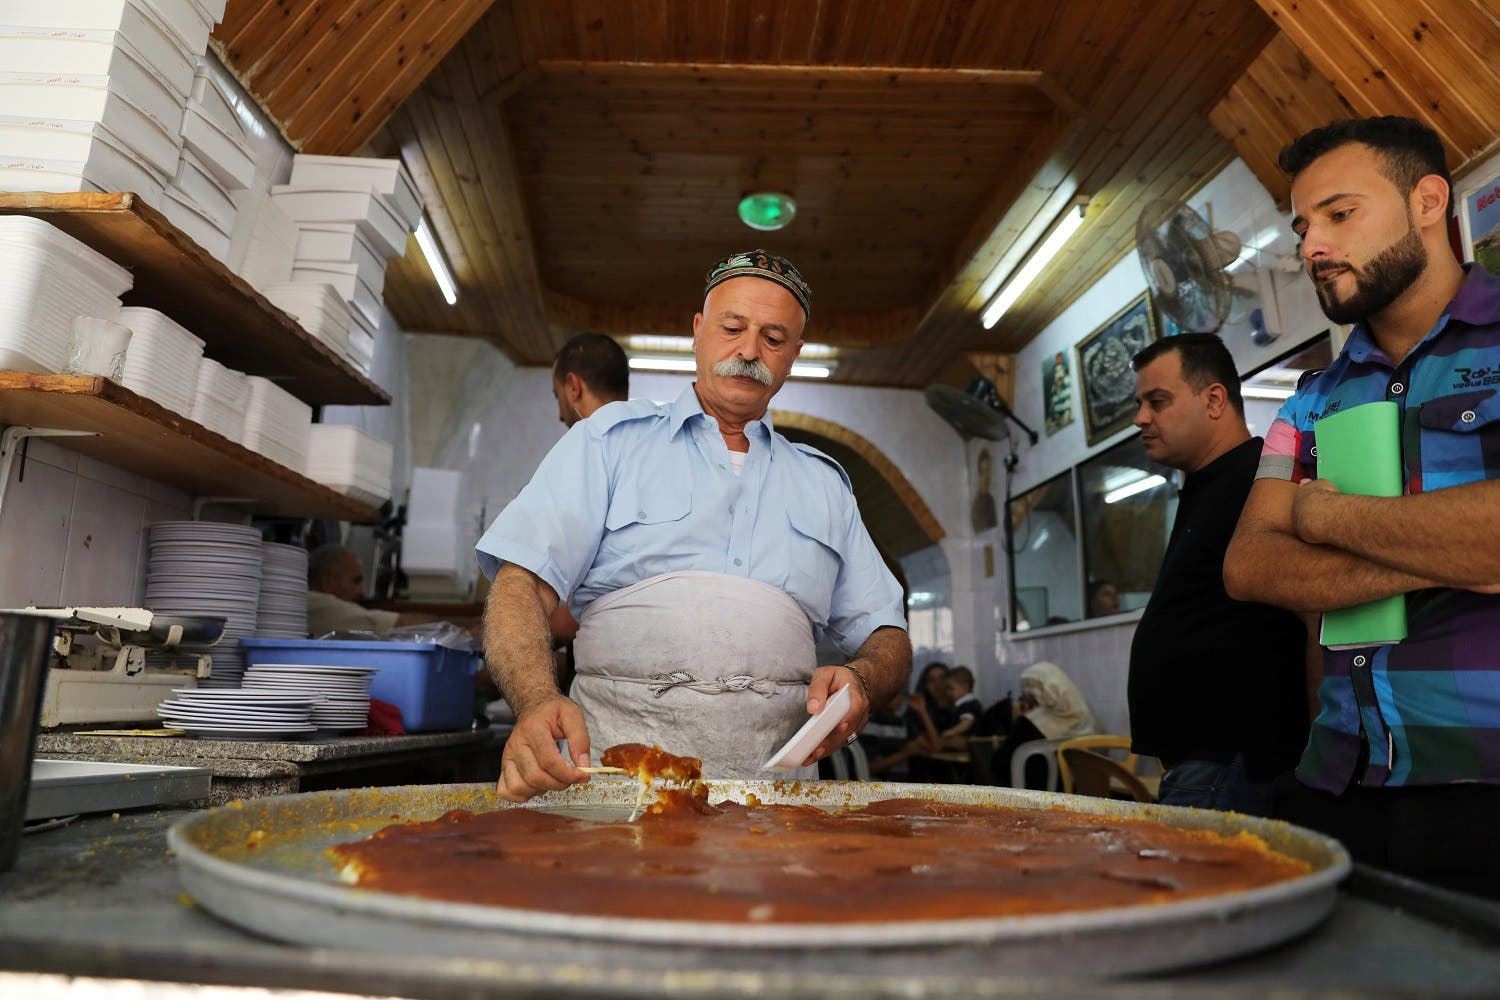 A Palestinian man serves knafa at al Aqsa sweet shop in the historic covered market of Nablus in the West Bank August 10, 2017. (Reuters)